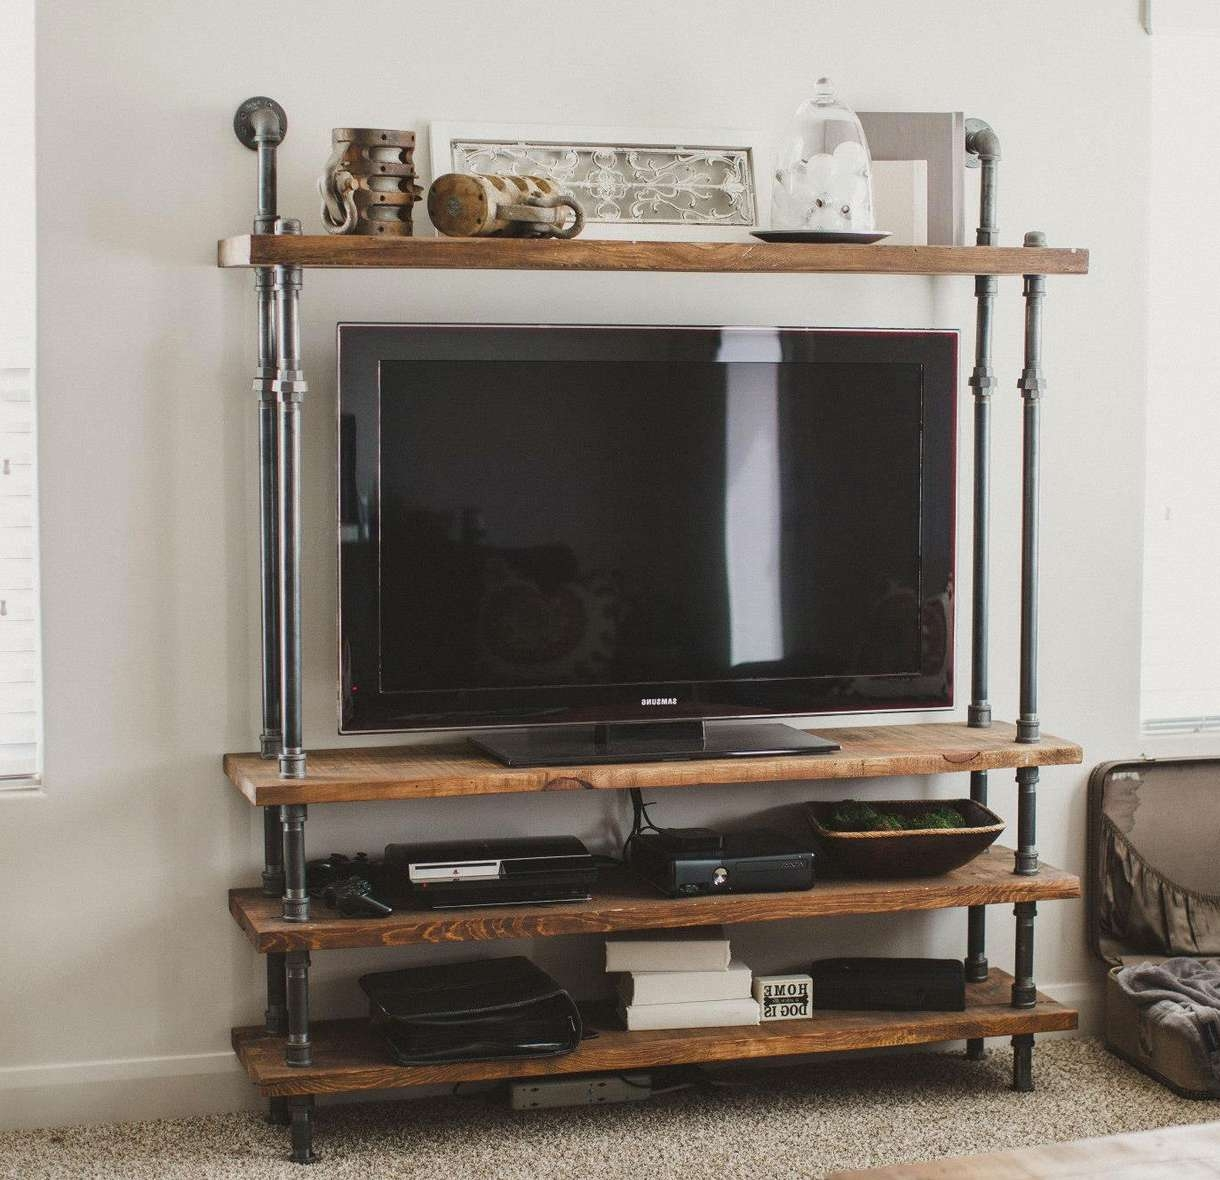 Cool Diy Industrial Pipe And Wood Combo Tv Stand With Shelves Of Within Unique Tv Stands (View 6 of 20)